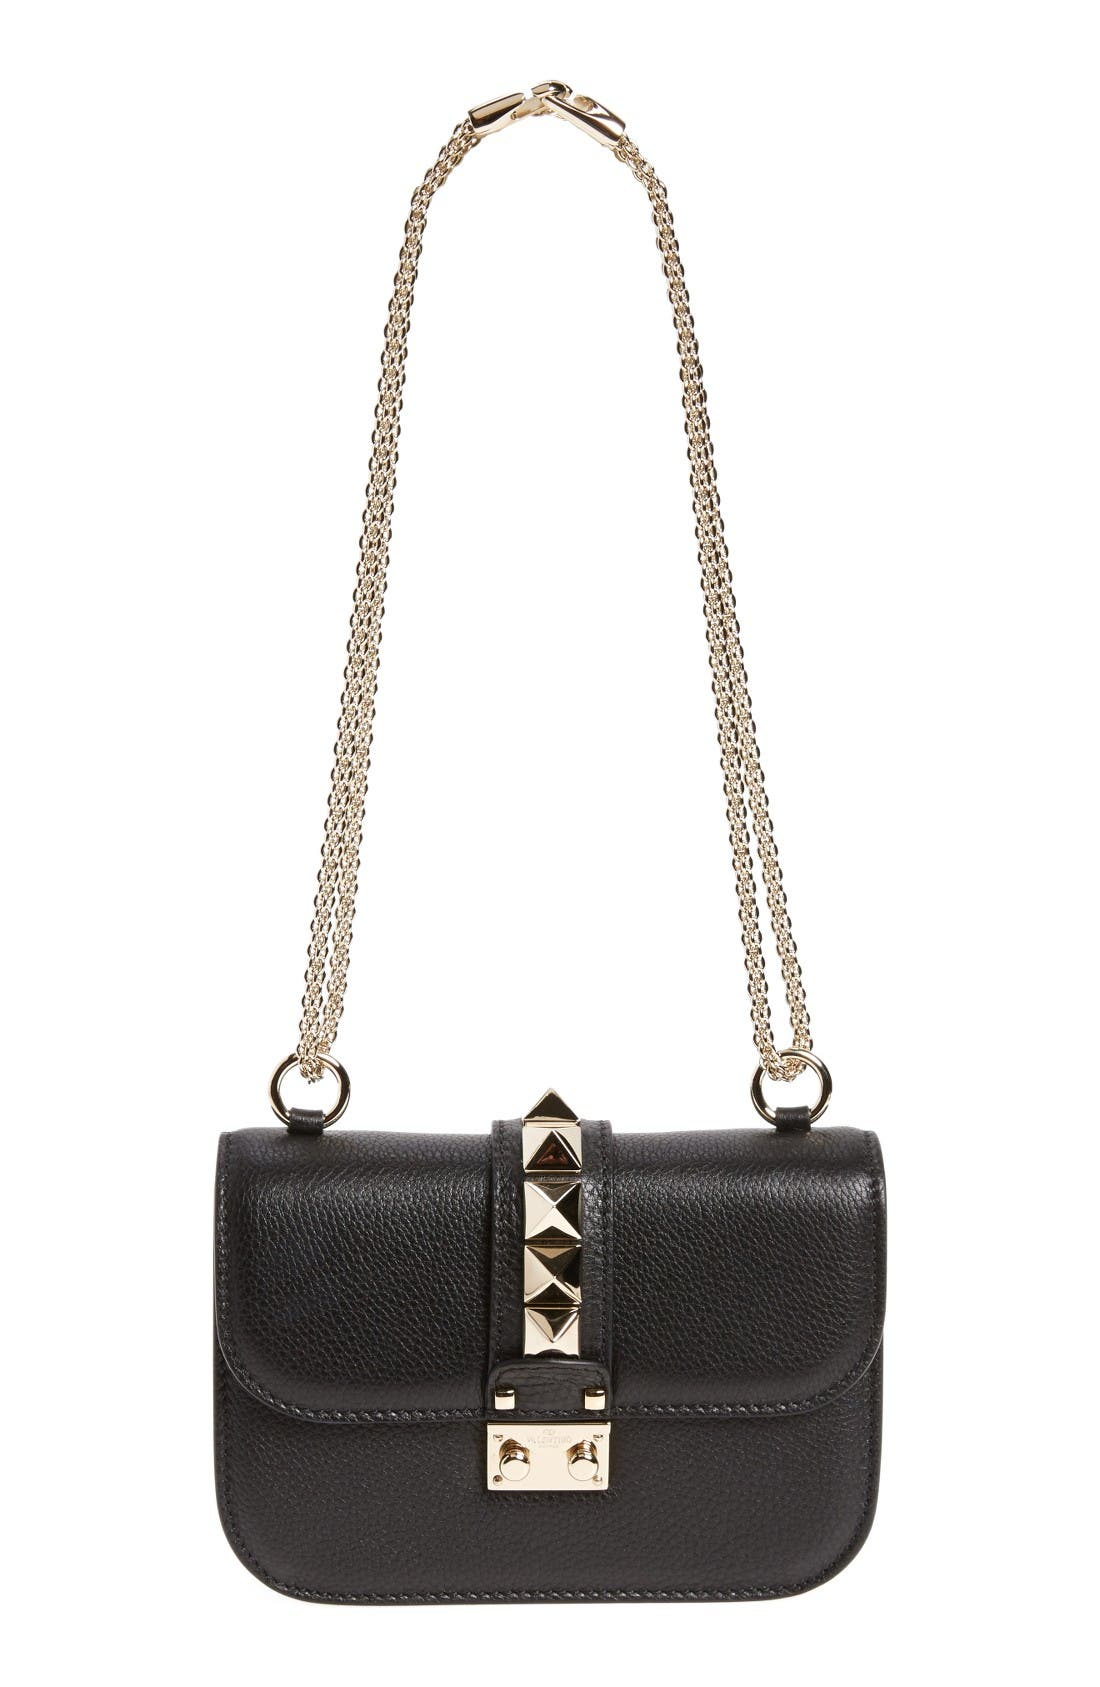 Rockstud - Small Lock Leather Crossbody Bag,                             Main thumbnail 1, color,                             Nero